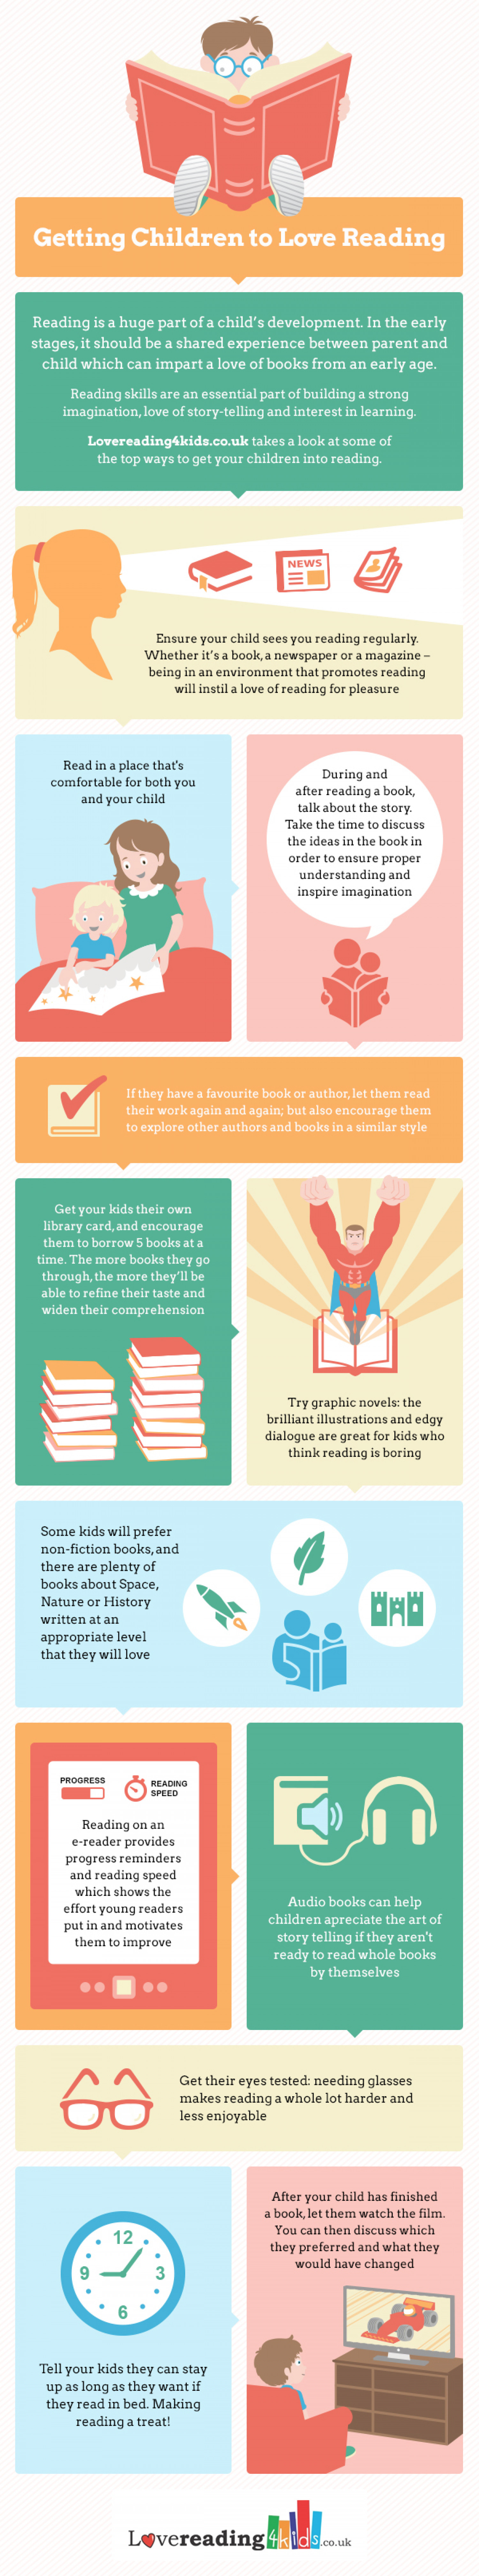 Getting Your Kids to Love Reading Infographic